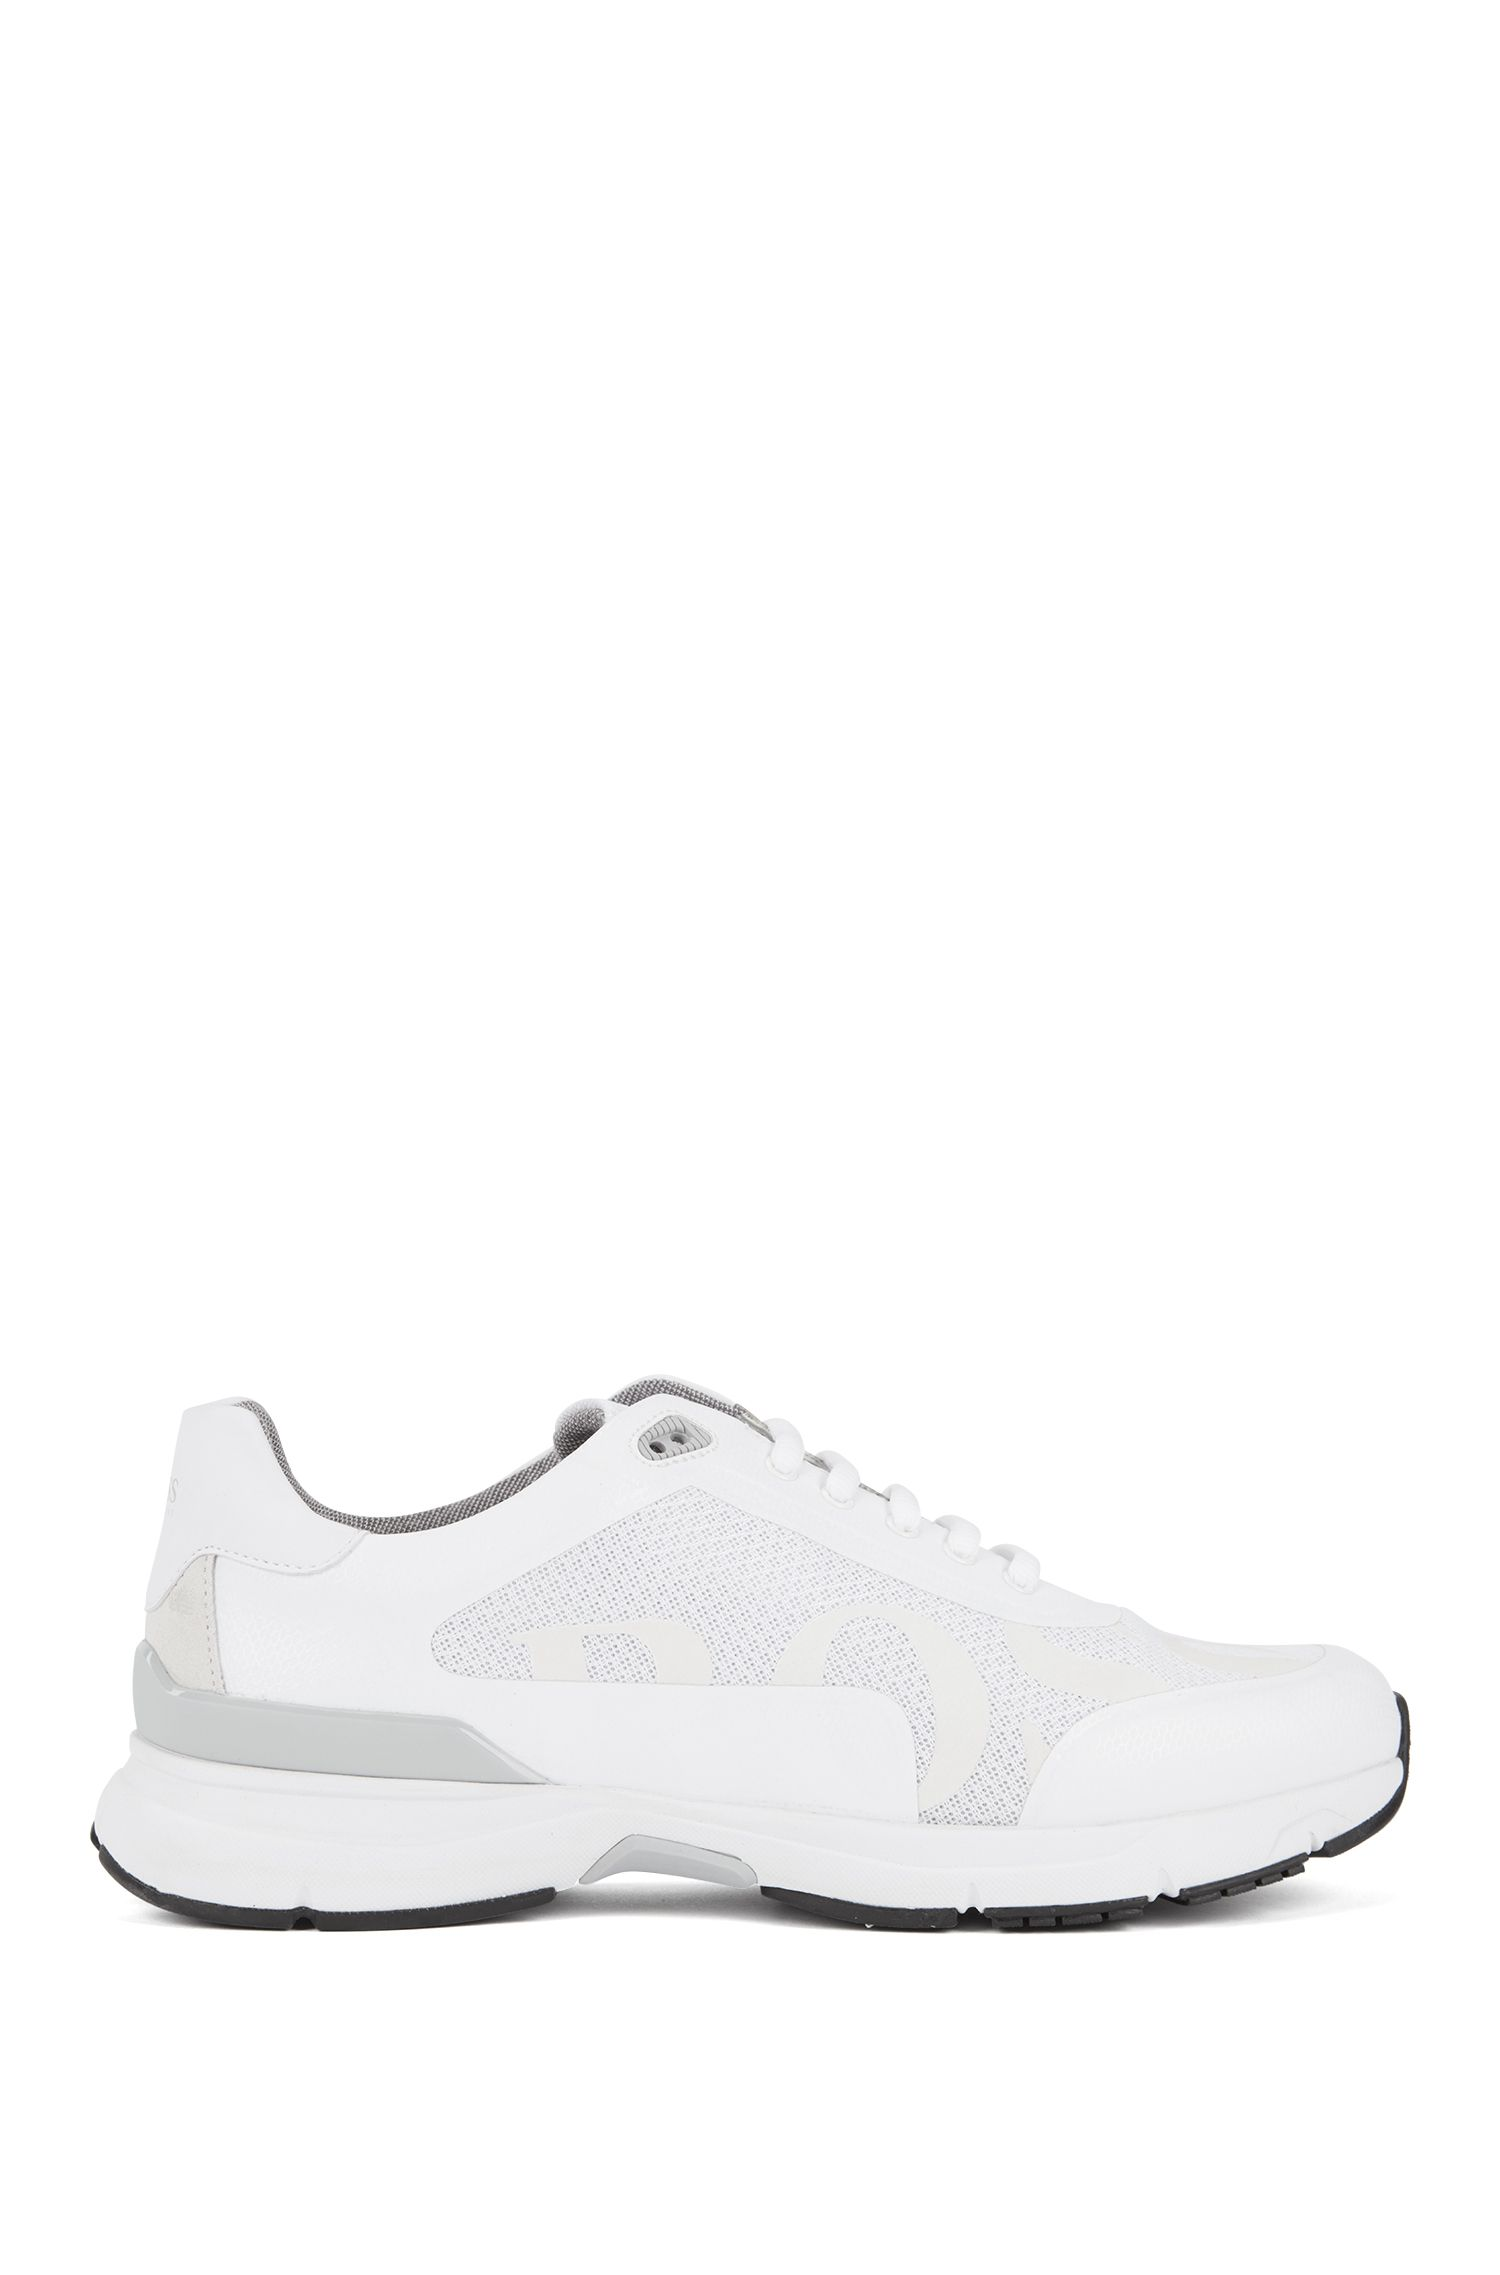 Running-inspired sneakers with bamboo-charcoal lining, White